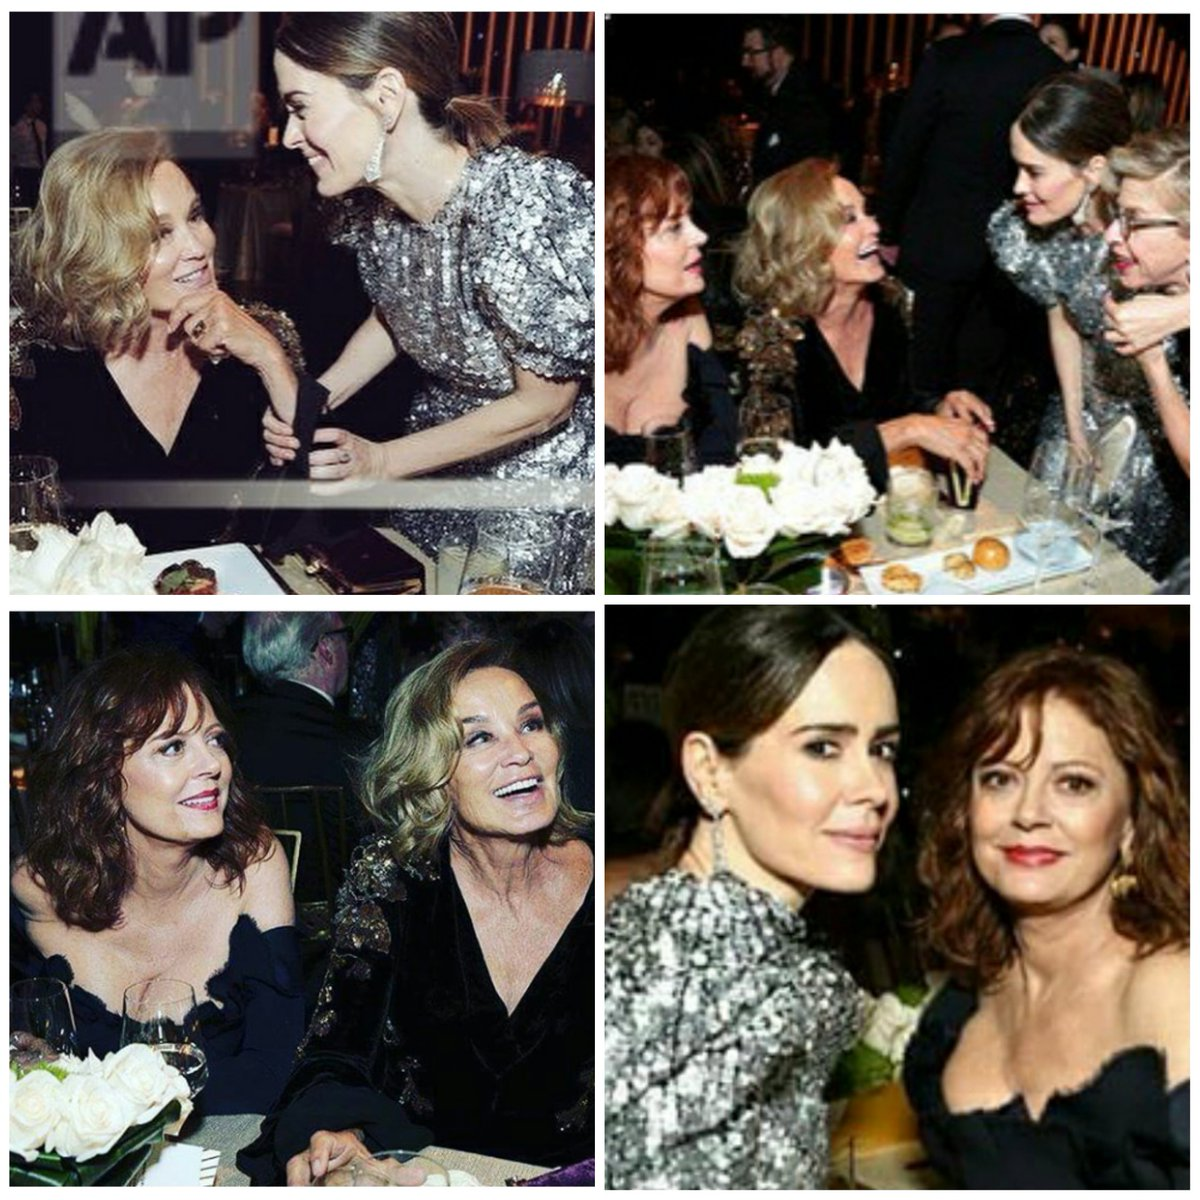 This is the table you want to be placed at #SarahPaulson #JessicaLange #SusanSarandon #JackieHoffman #FeudFX https://t.co/YQuJ8Bju5t